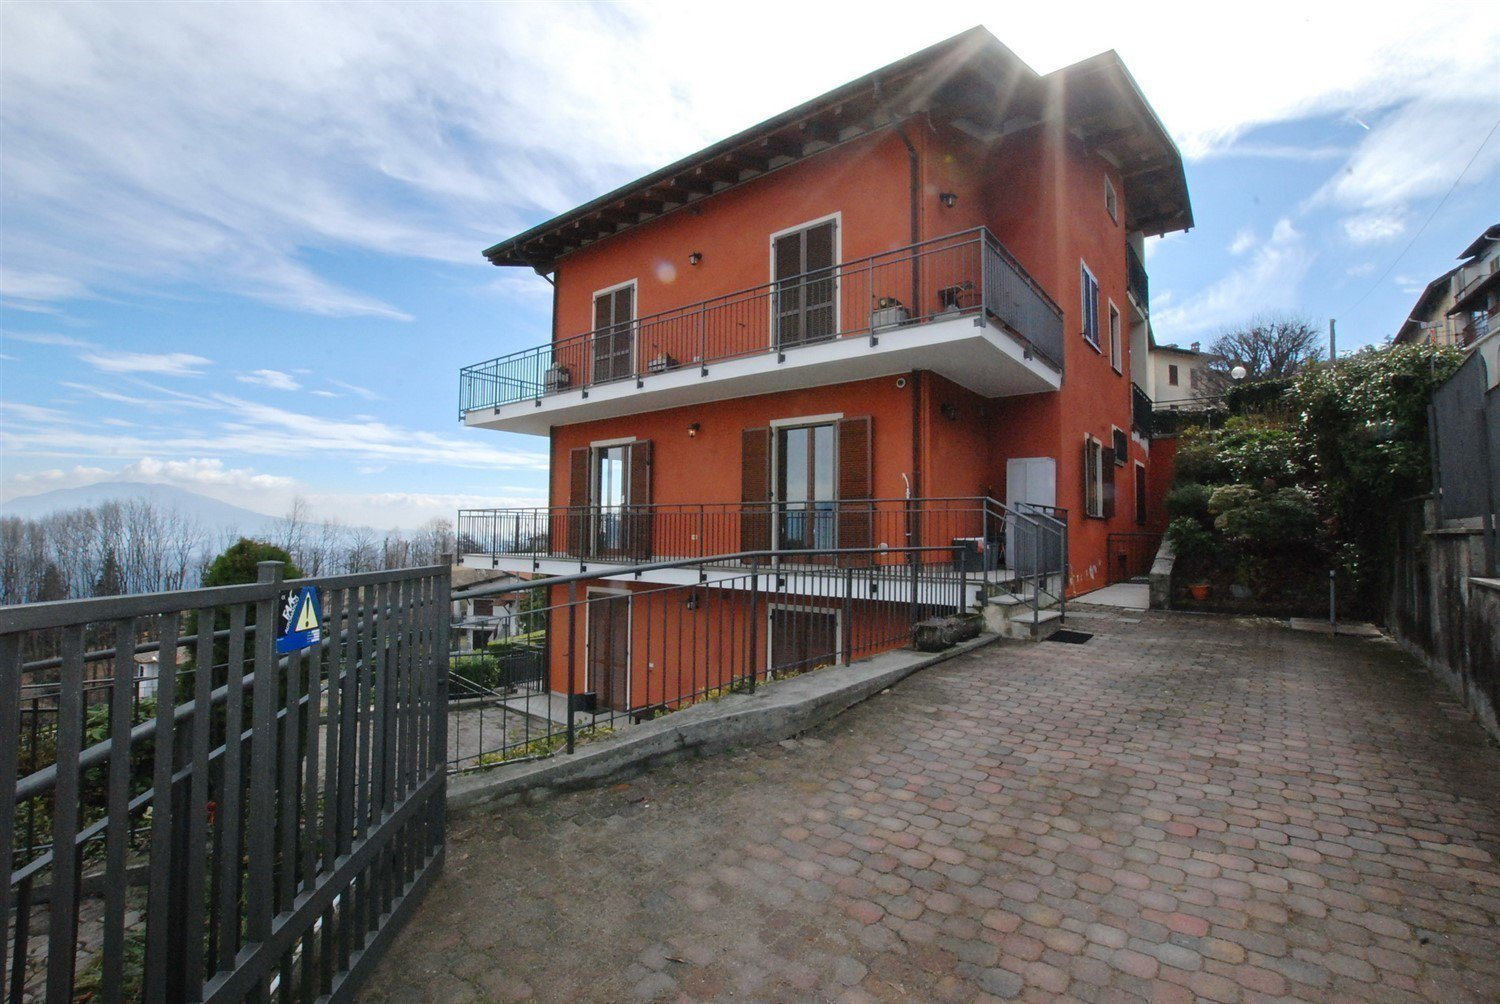 Lake view apartment for sale in Stresa - building's outside